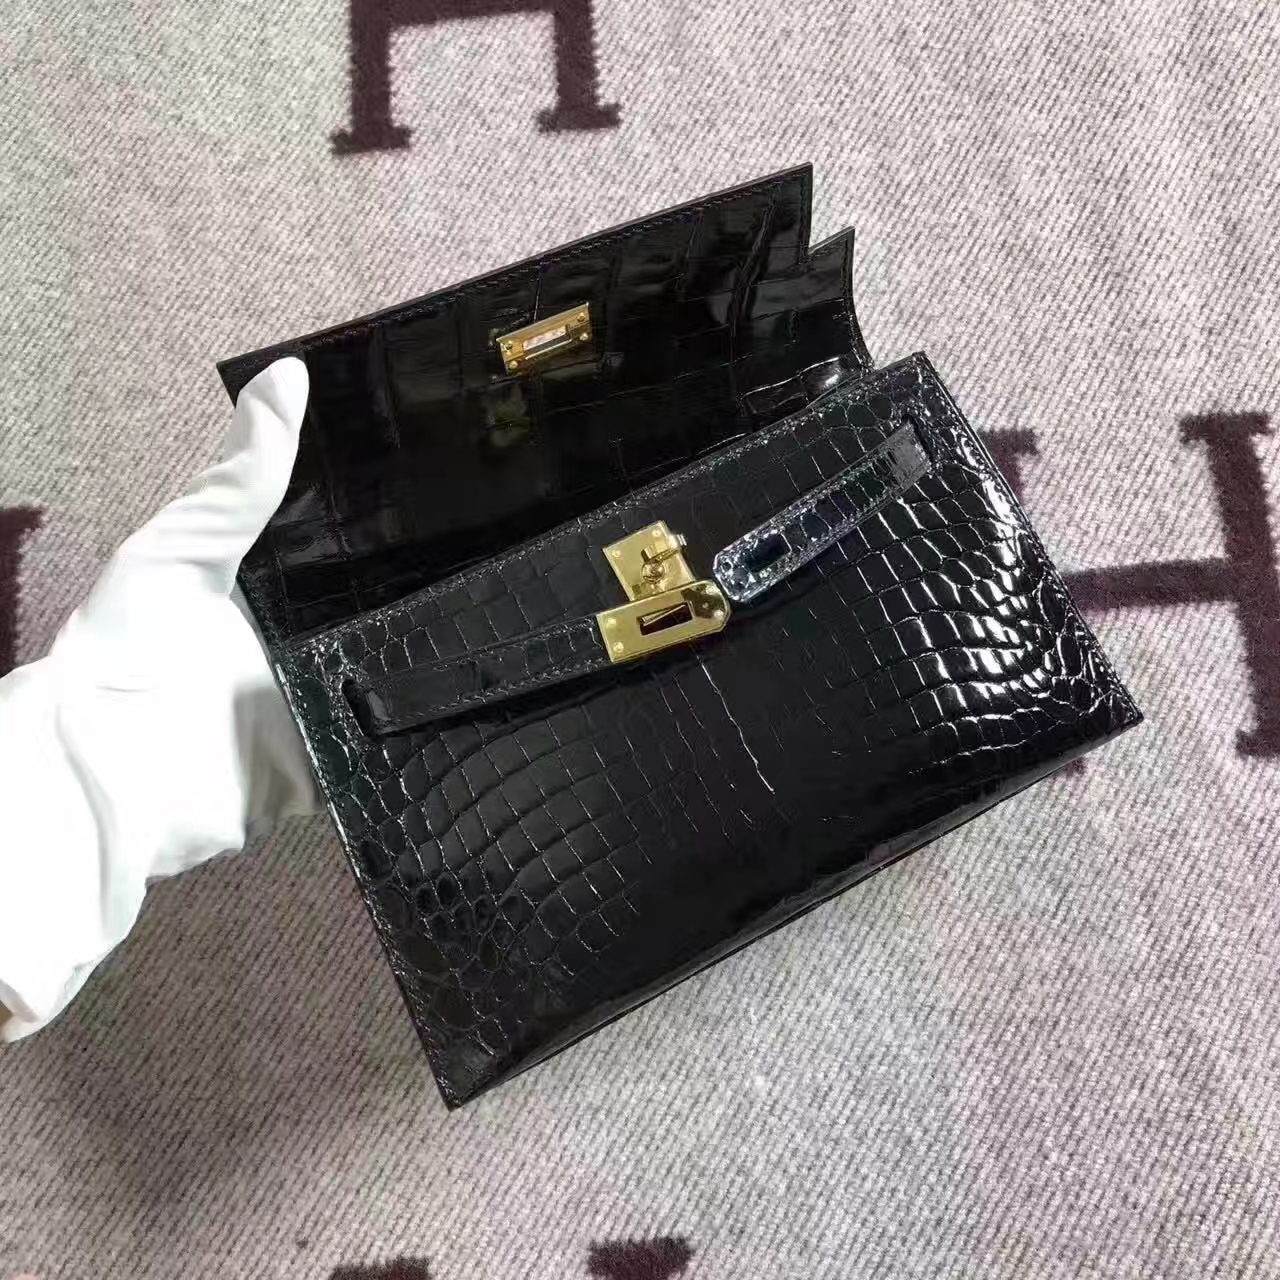 Hot Sale Hermes 89 Black Crocodile Shiny Leather Minikelly Handbag 22cm